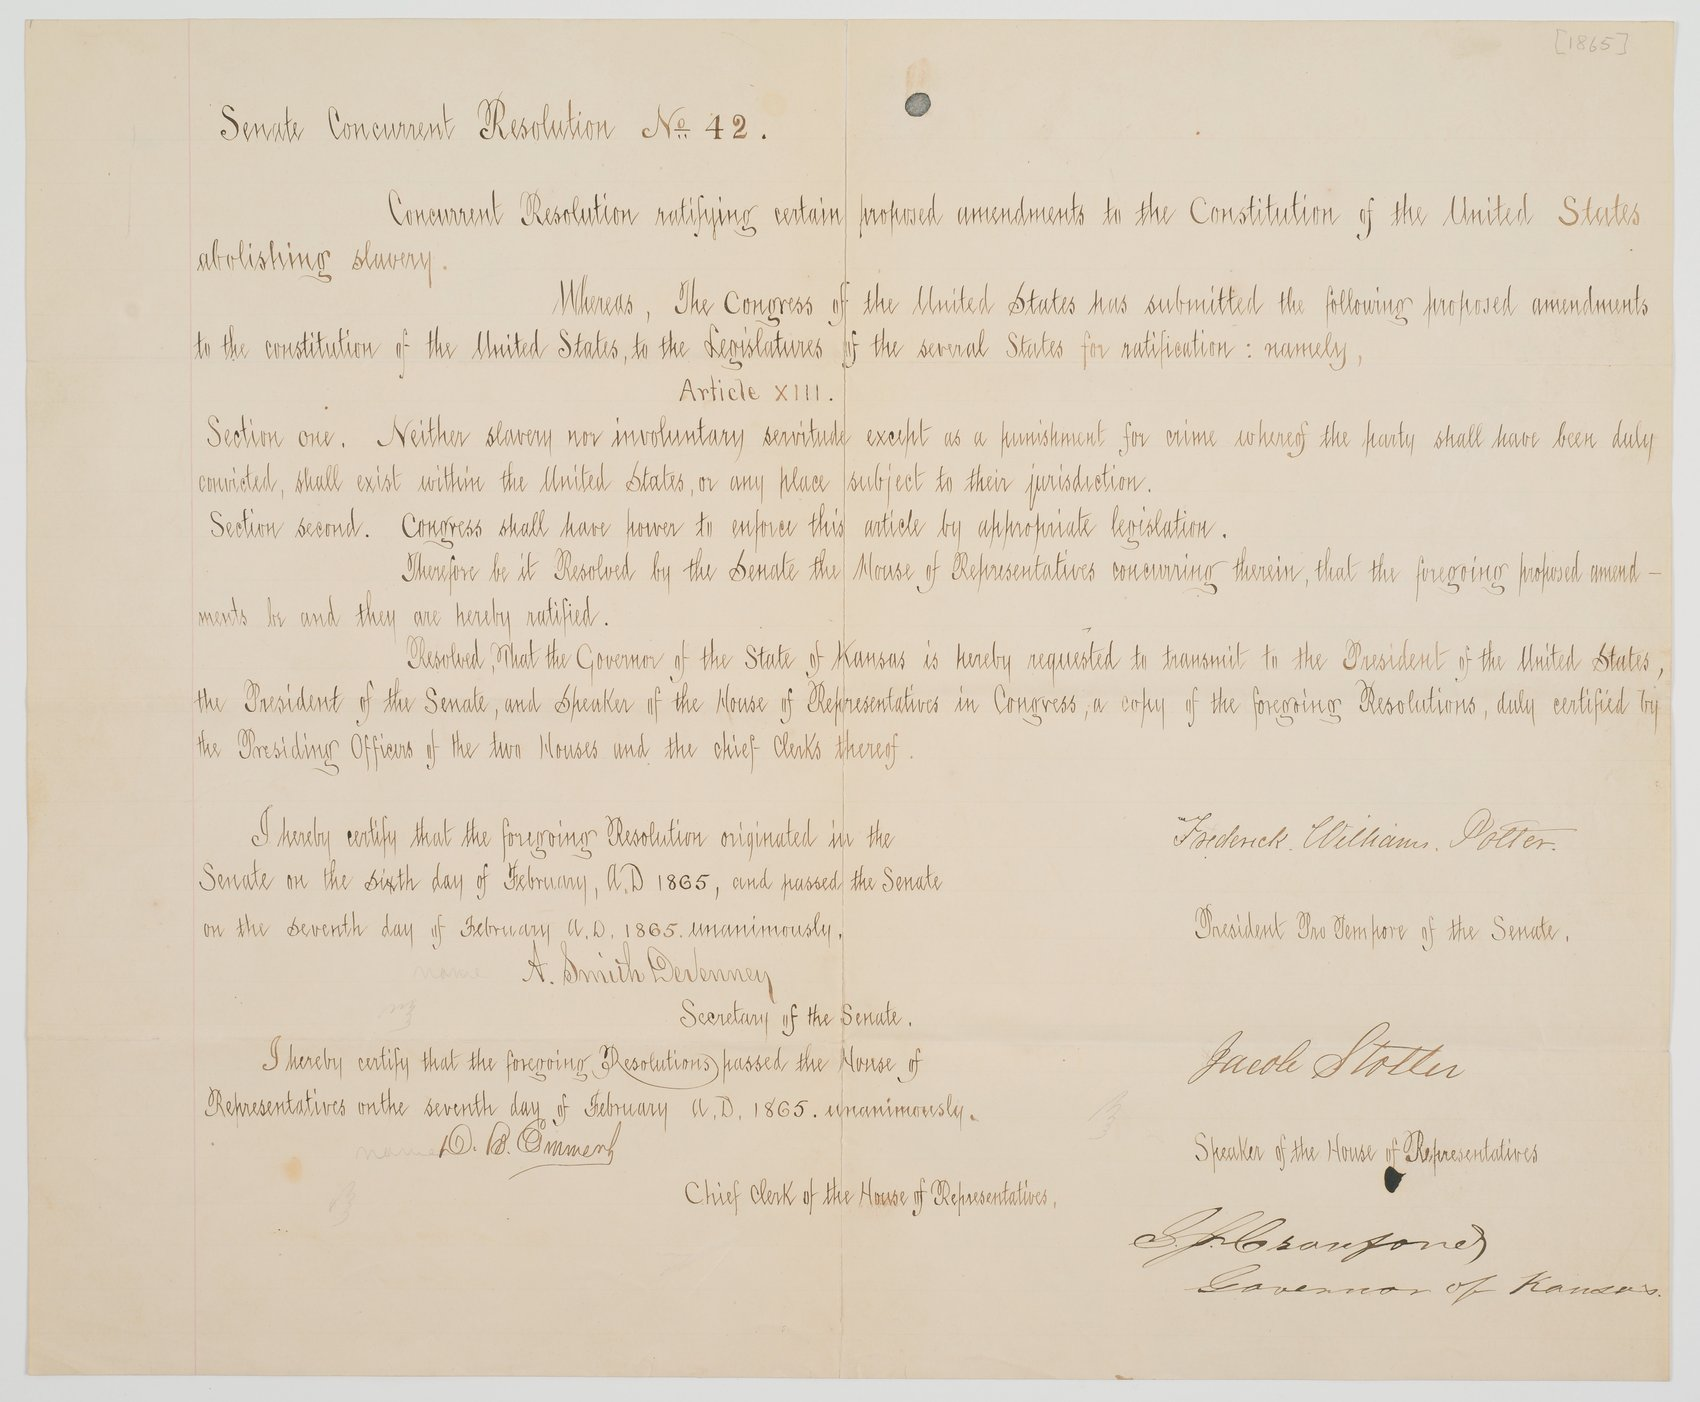 Senate Concurrent Resolution no. 42 ratifying the Thirteenth Amendment to the U. S. Constitution abolishing slavery